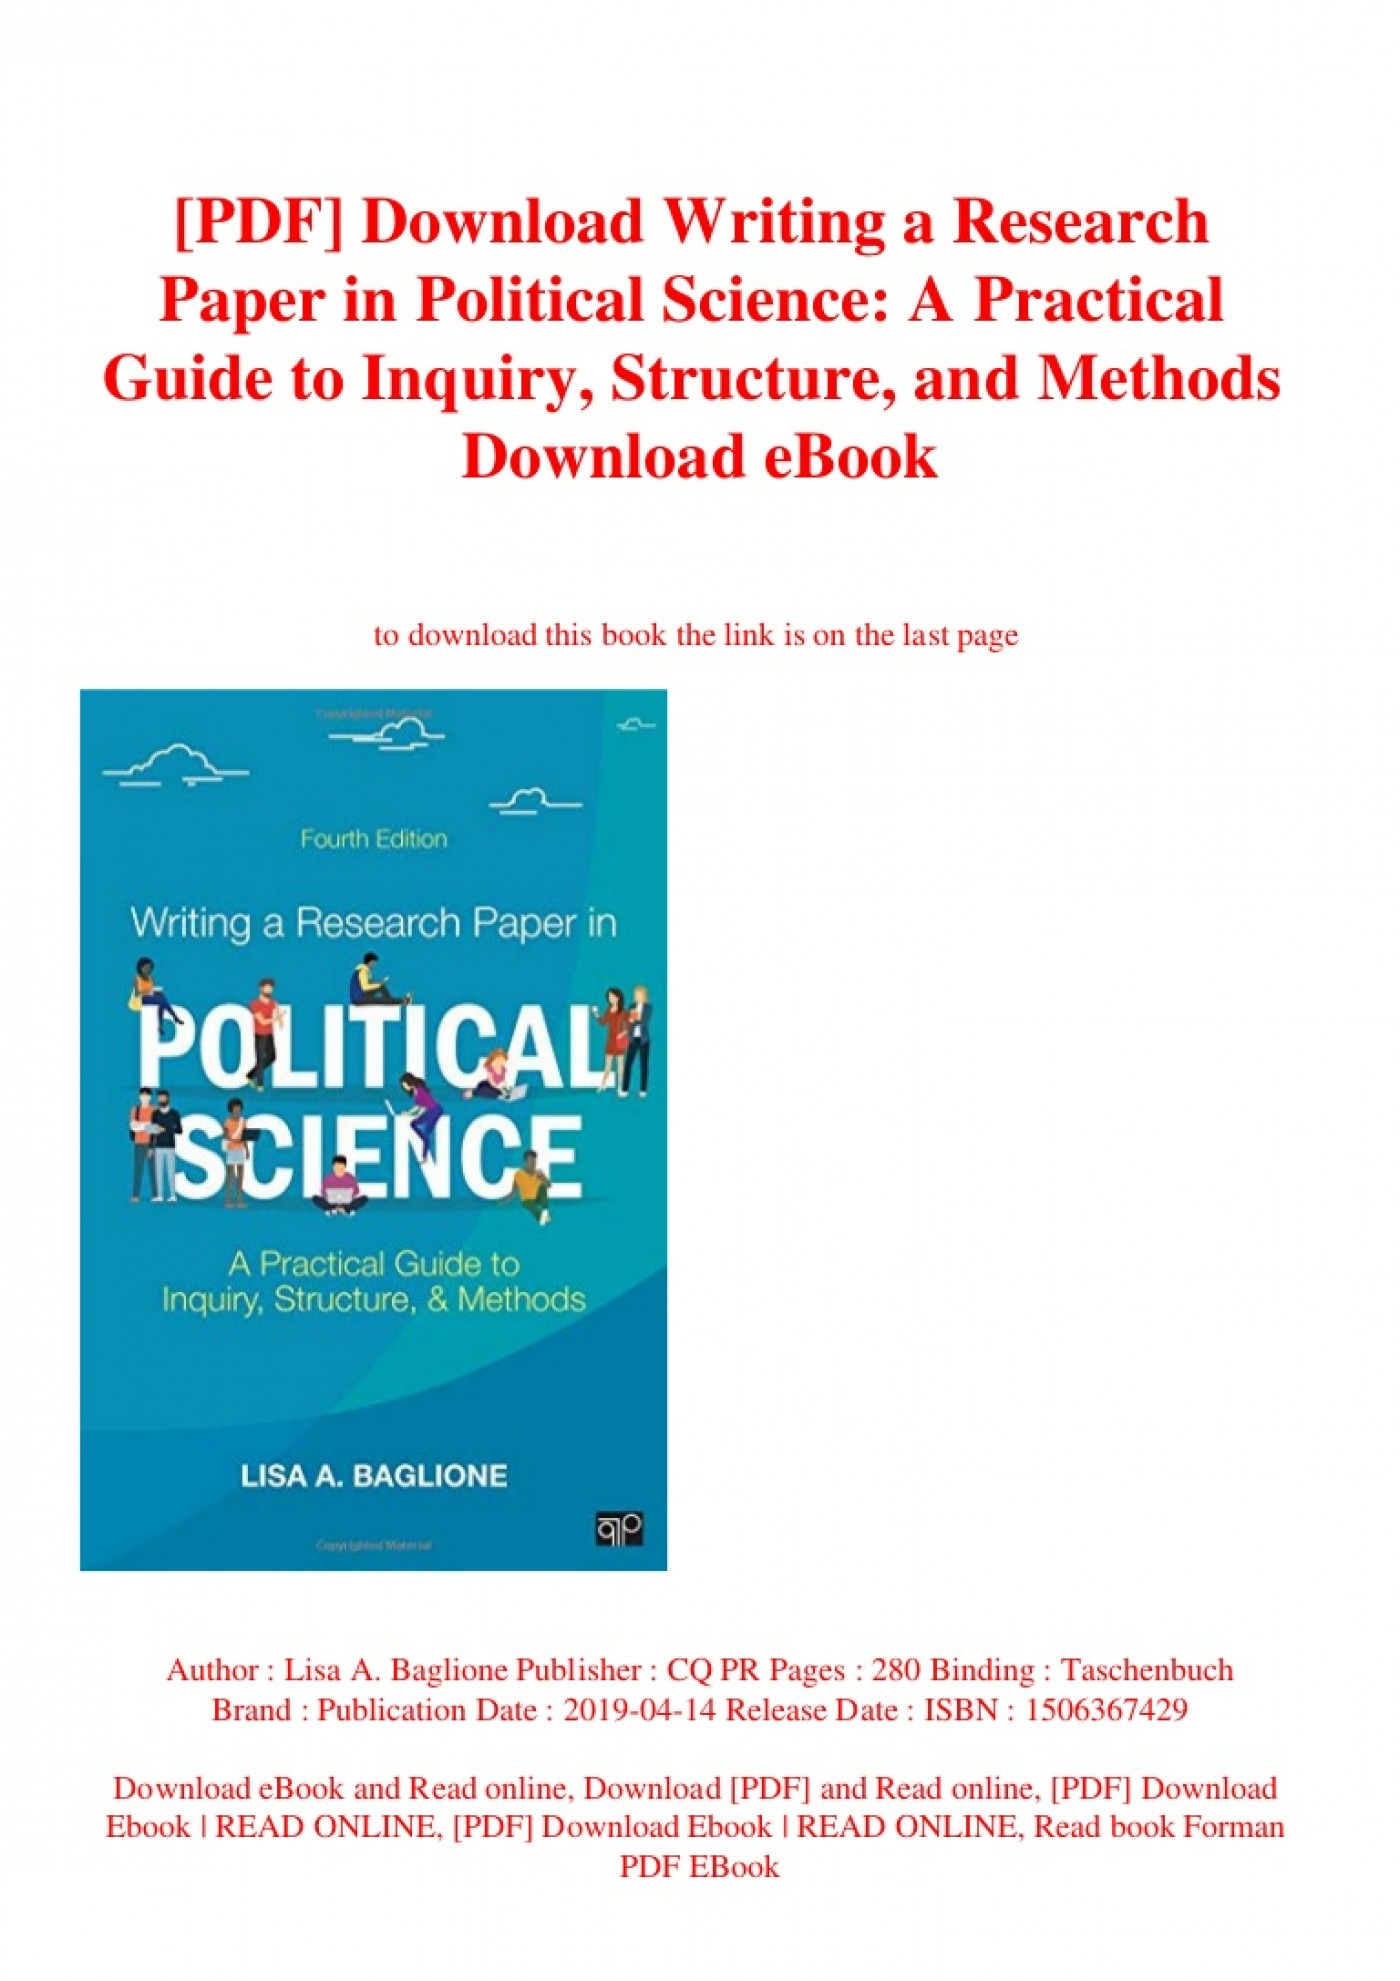 003 Baglione Writing Research Paper Pdf Pdfdownloadwritingaresearchpaperinpoliticalscienceapracticalguidetoinquirystructureandmethodsdownloa Thumbnail Awesome A In Political Science Lisa 1400